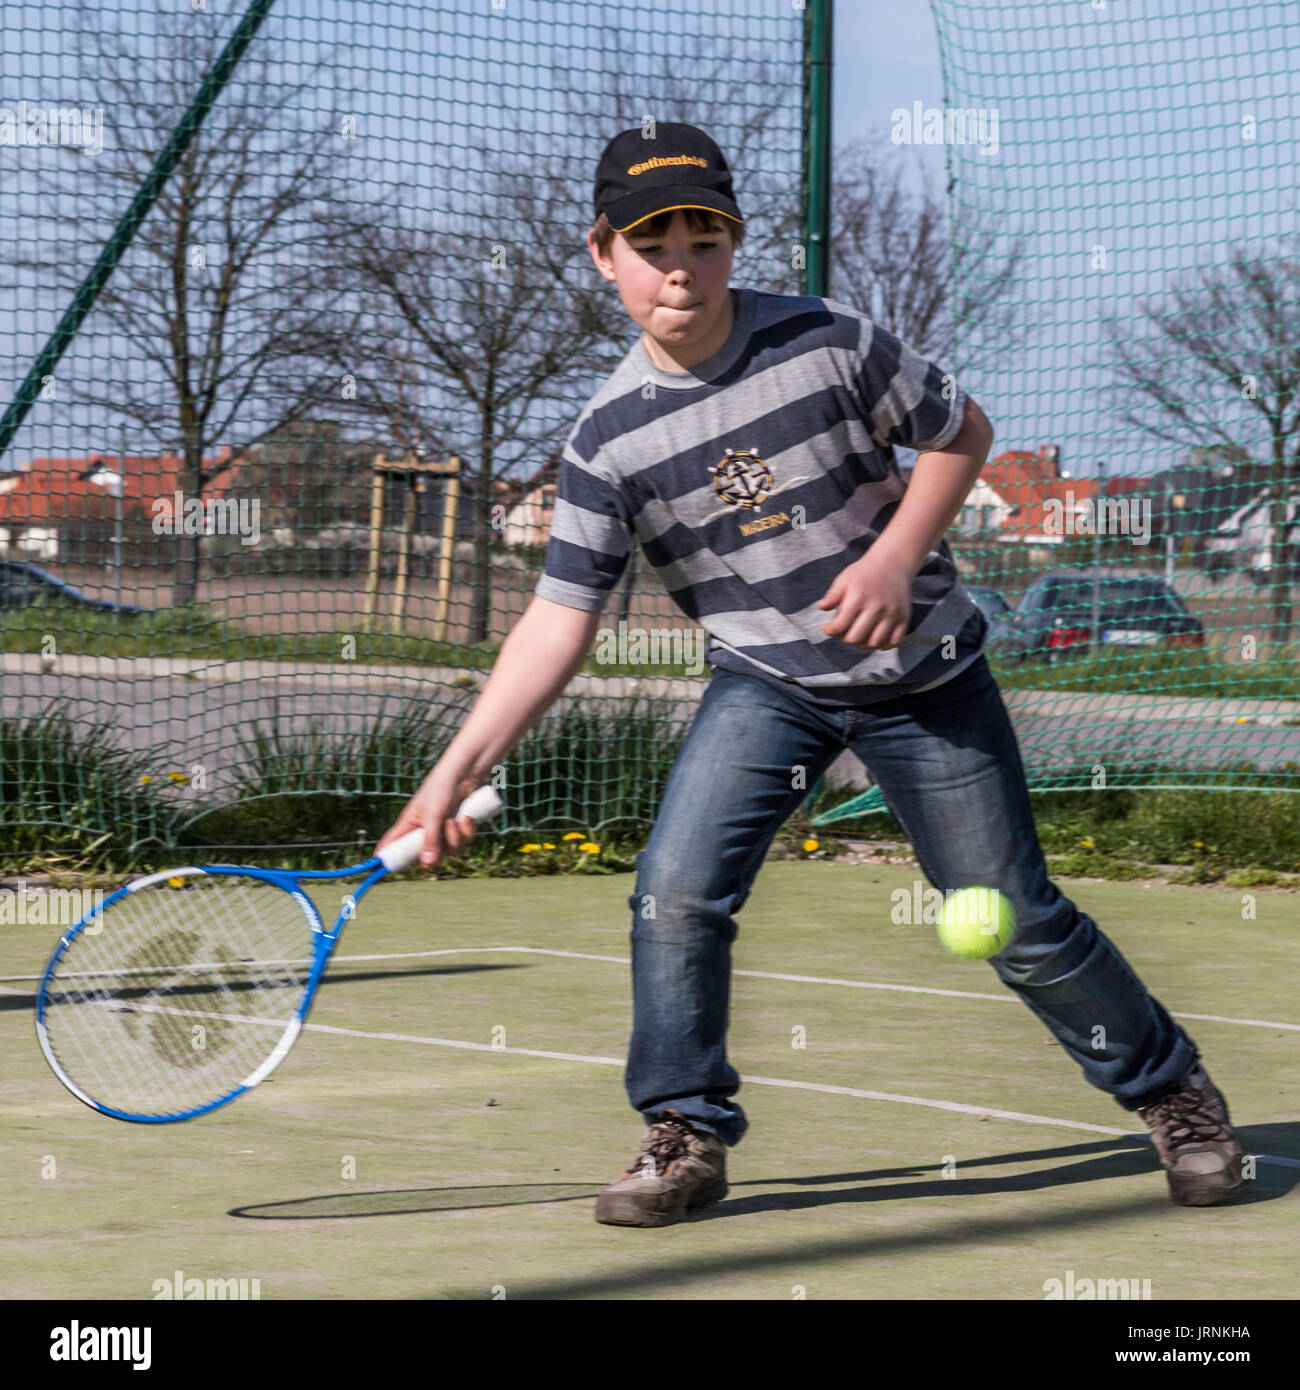 A boy or teenager playing tennis, excercise during holidays, vacation time, late summer in Poland. - Stock Image